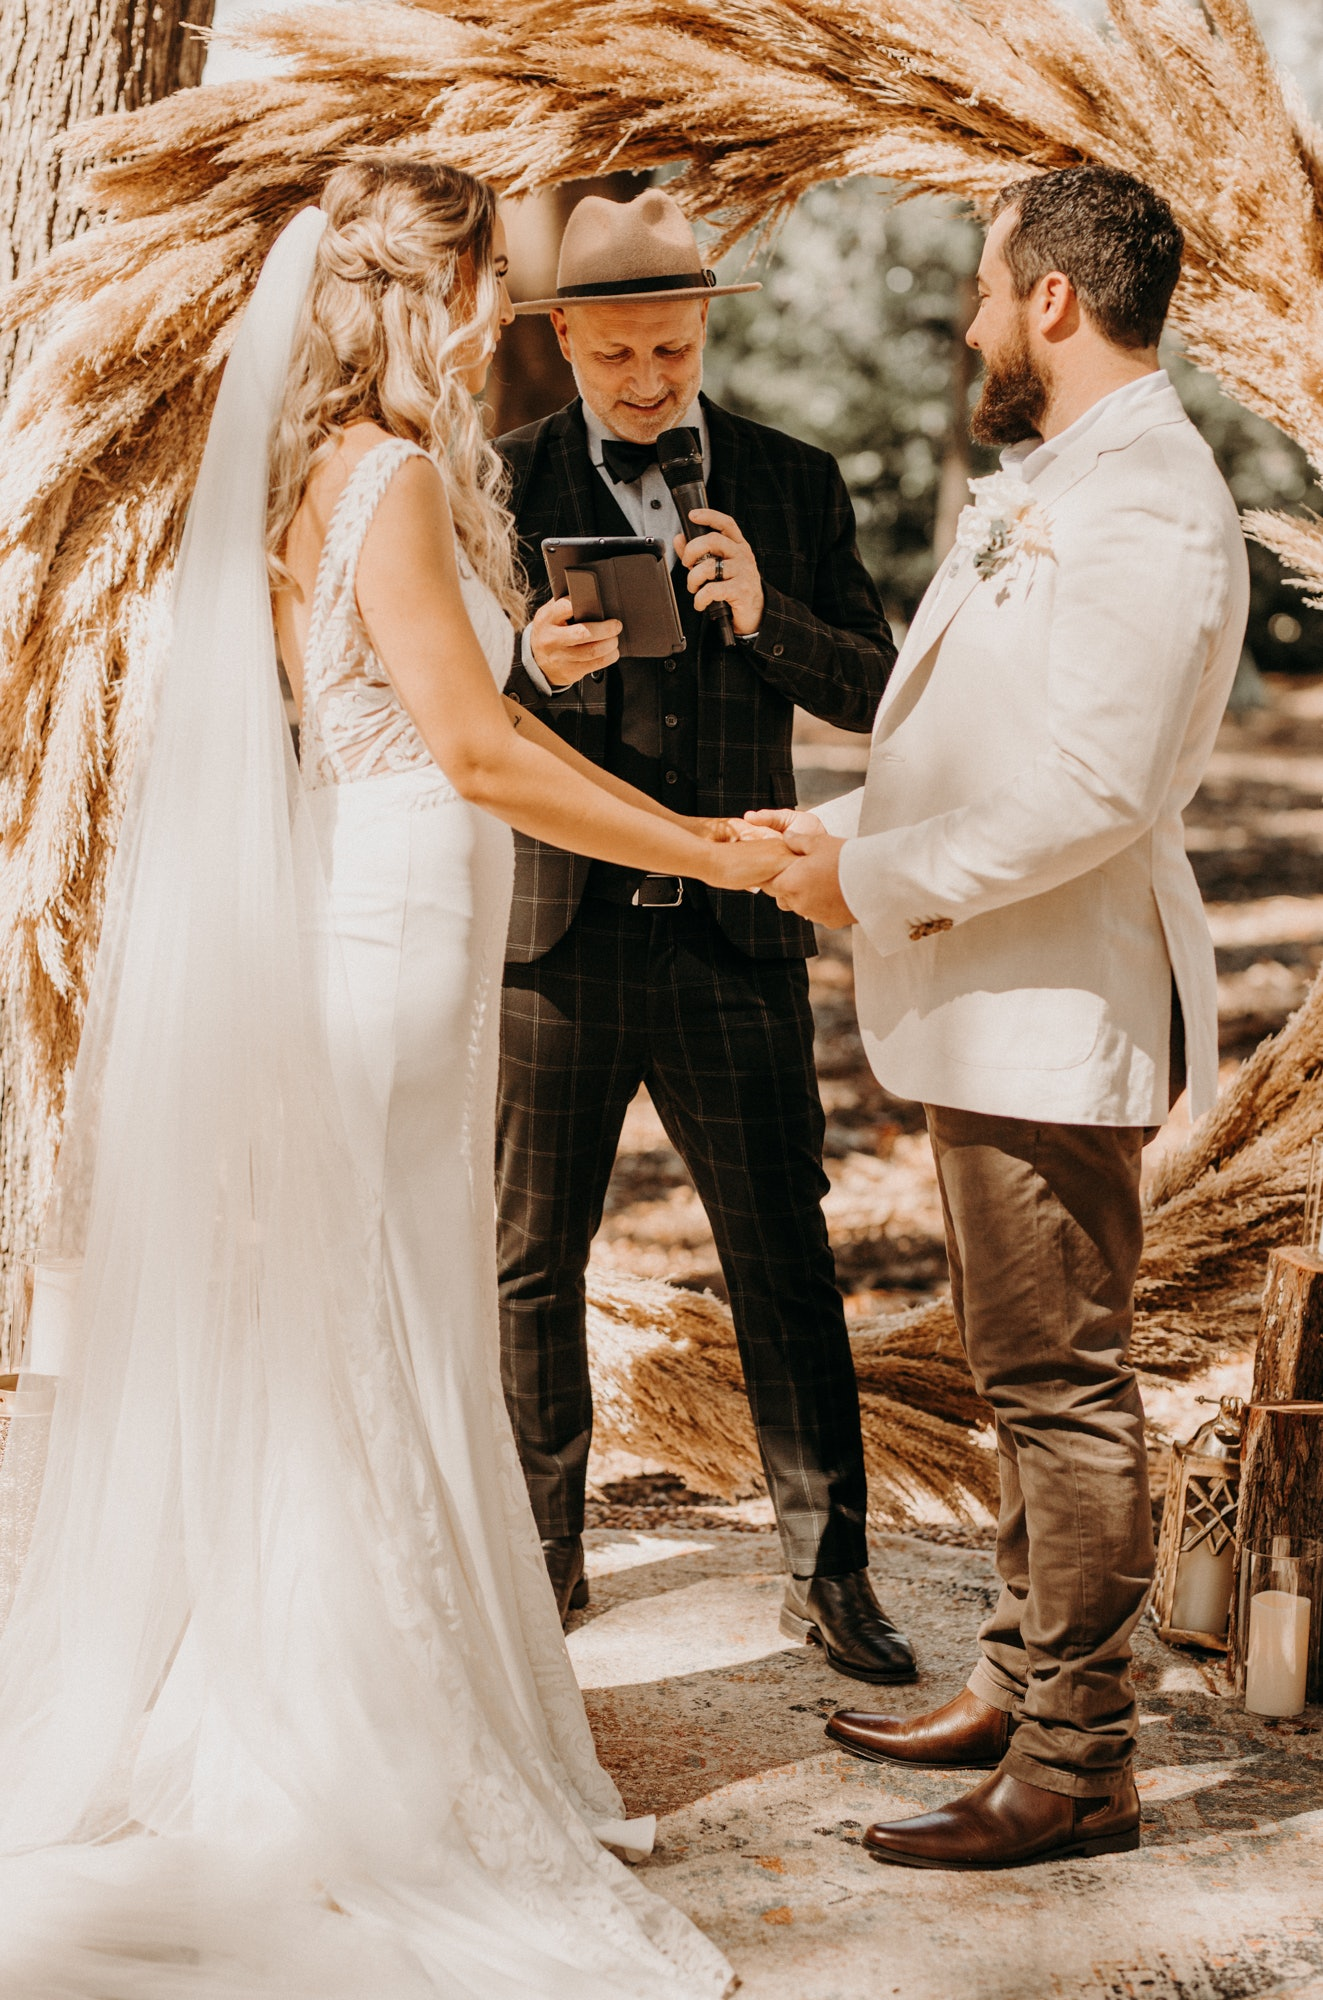 Bride and Groom standing at altar with celebrant